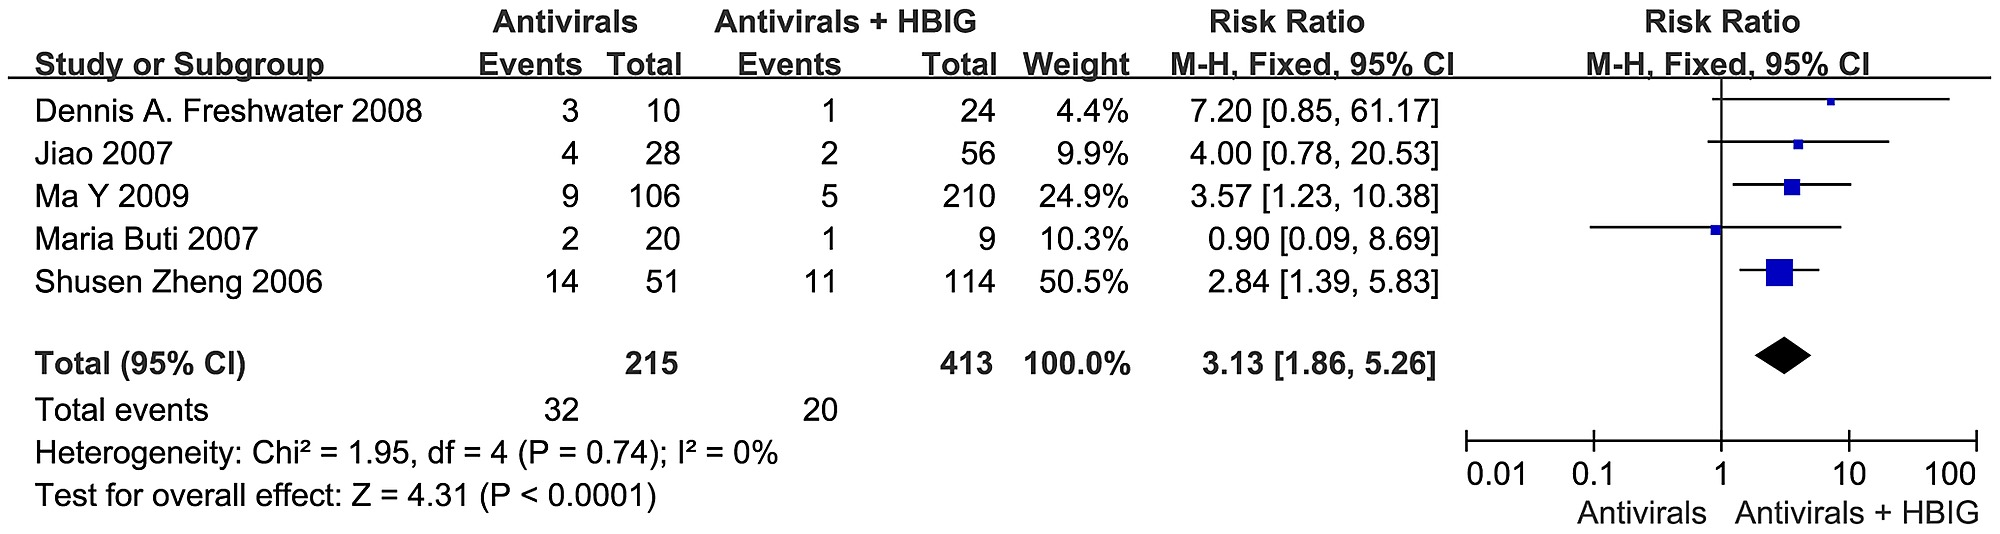 Antiviral drugs or antiviral drugs combined with HBIG in